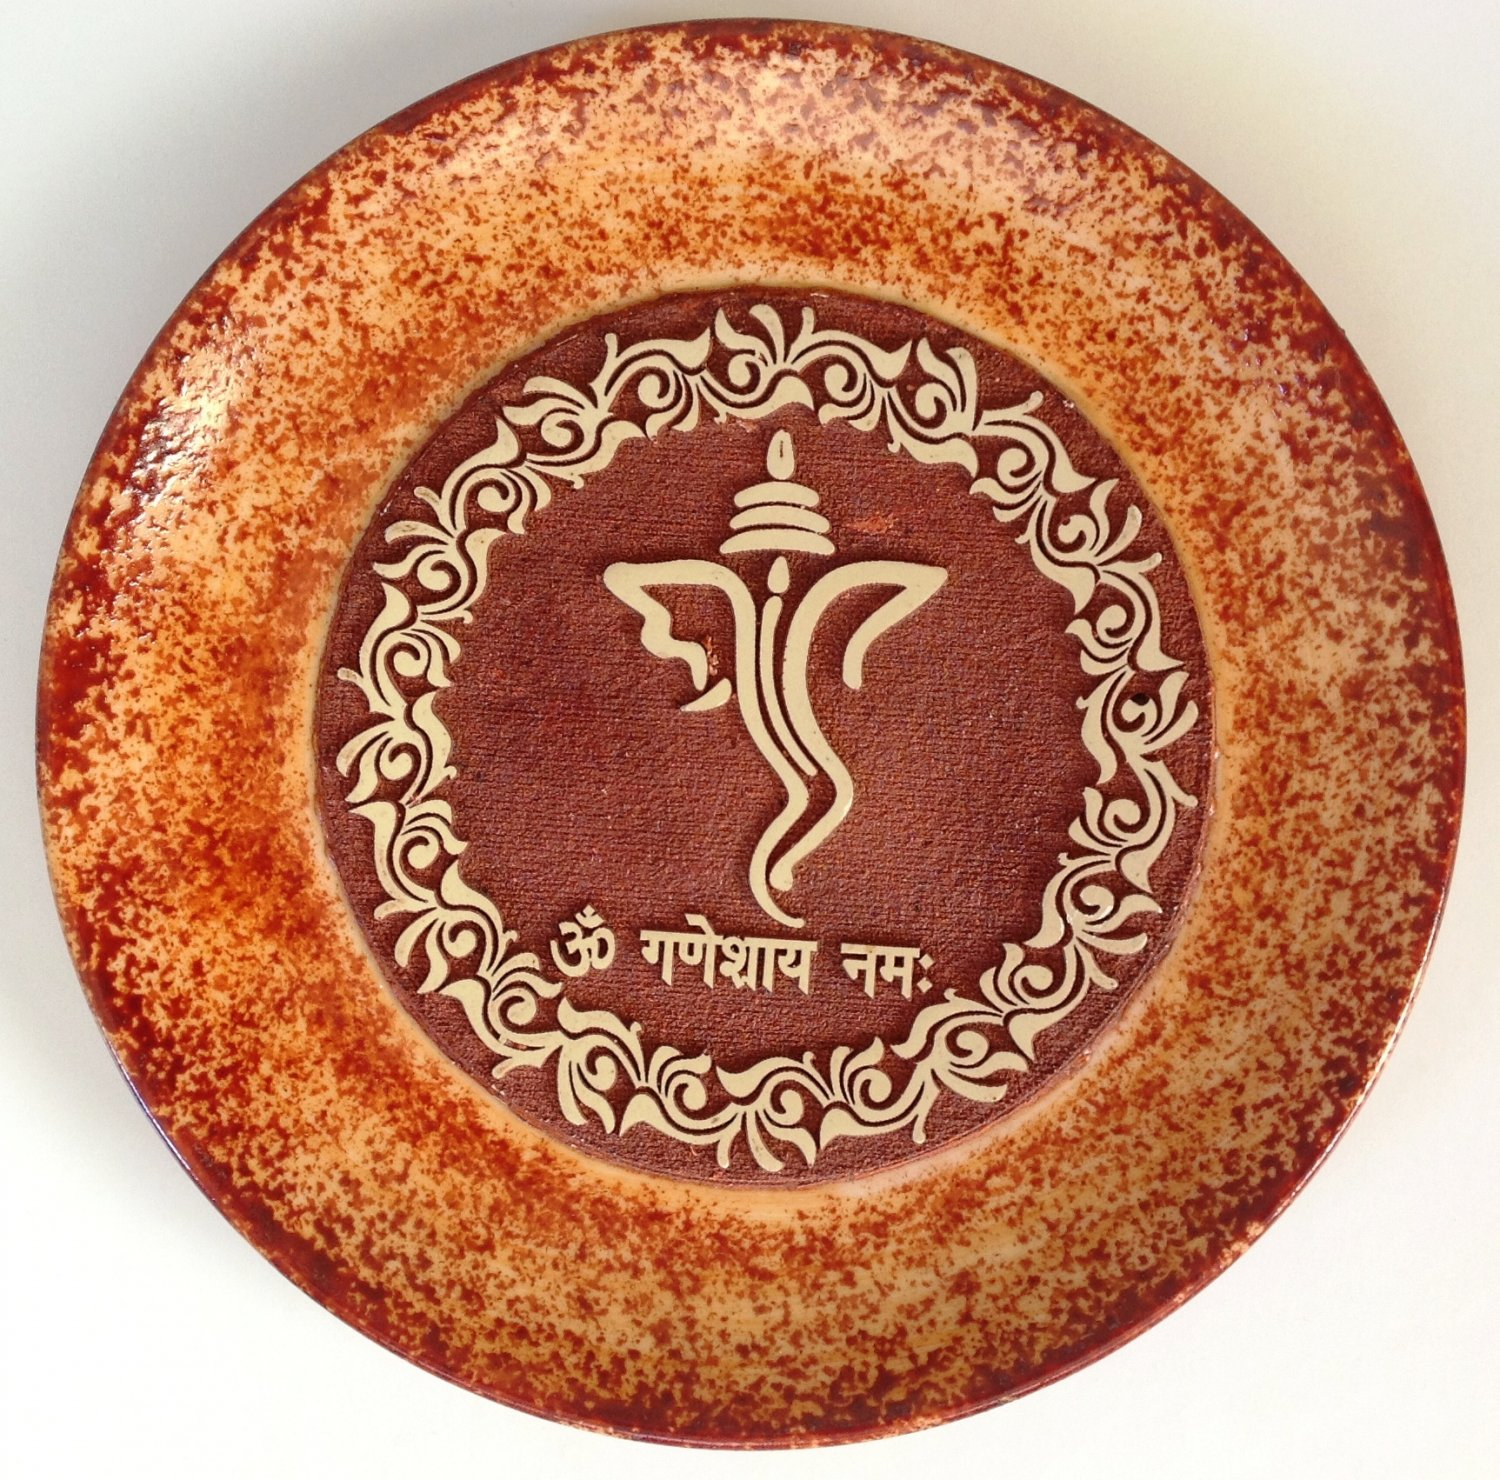 Indian 7� Terracotta Plate Art Handmade Ganesh Clay Pottery Home Decor Folk Art